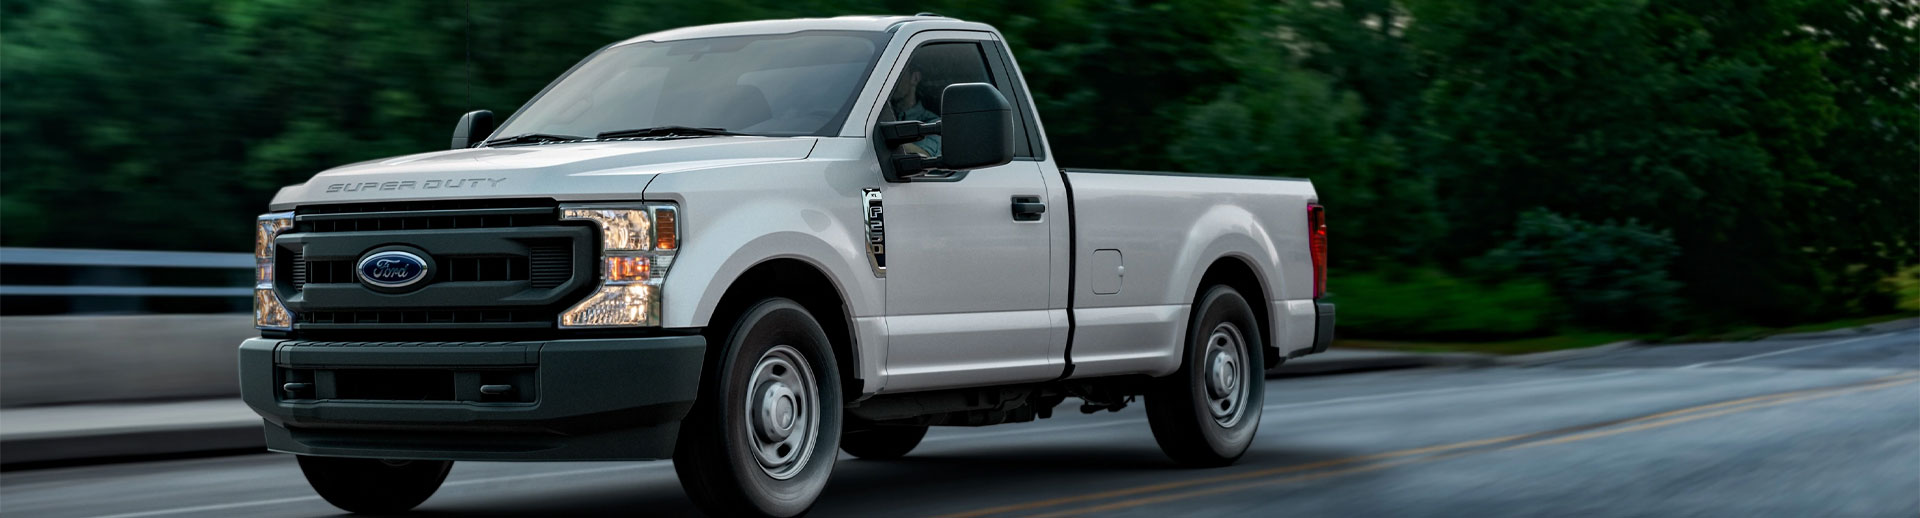 2021 Ford F-250 Lifestyle Photo